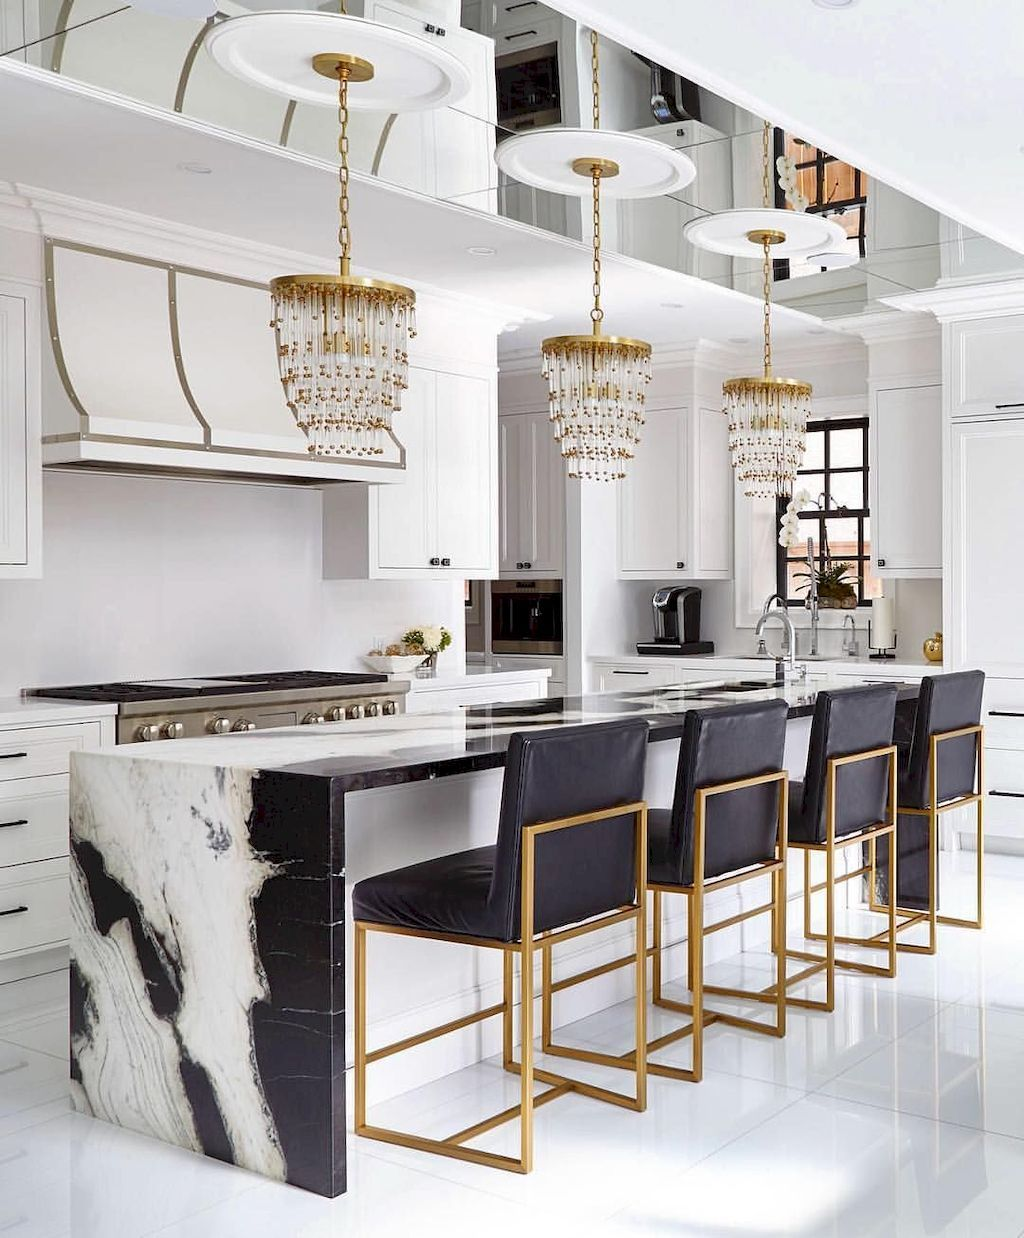 Cool awesome luxury kitchen design ideas https carribeanpic also inspiring floor plans you will love amazing rh pinterest